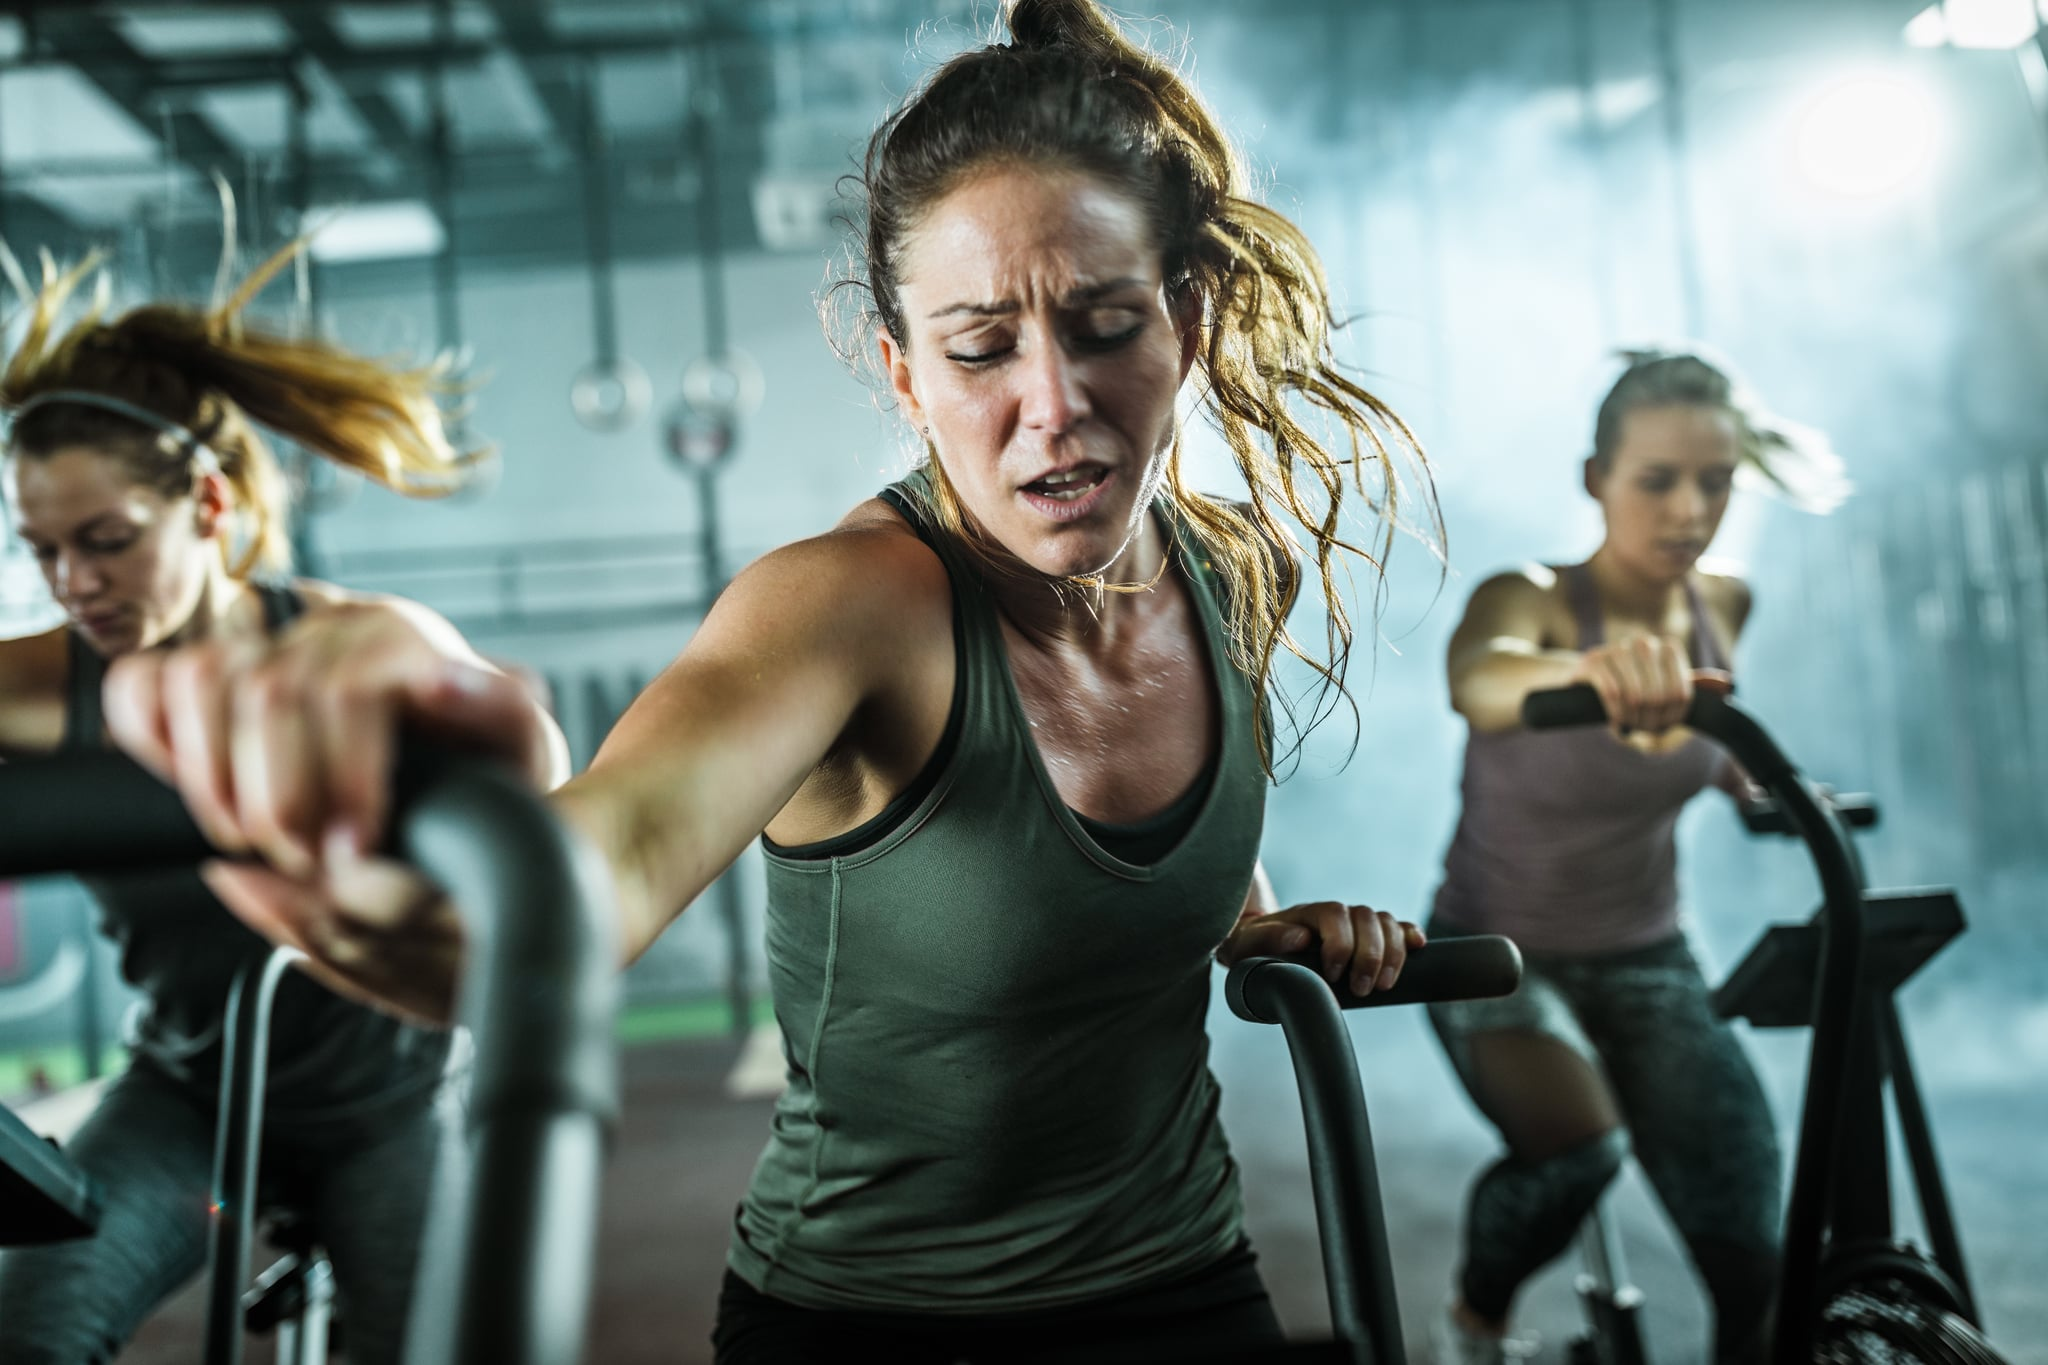 Workouts That Don't Make You Sweat Can Still Help Weight Loss, a Doctor Says — Here's How